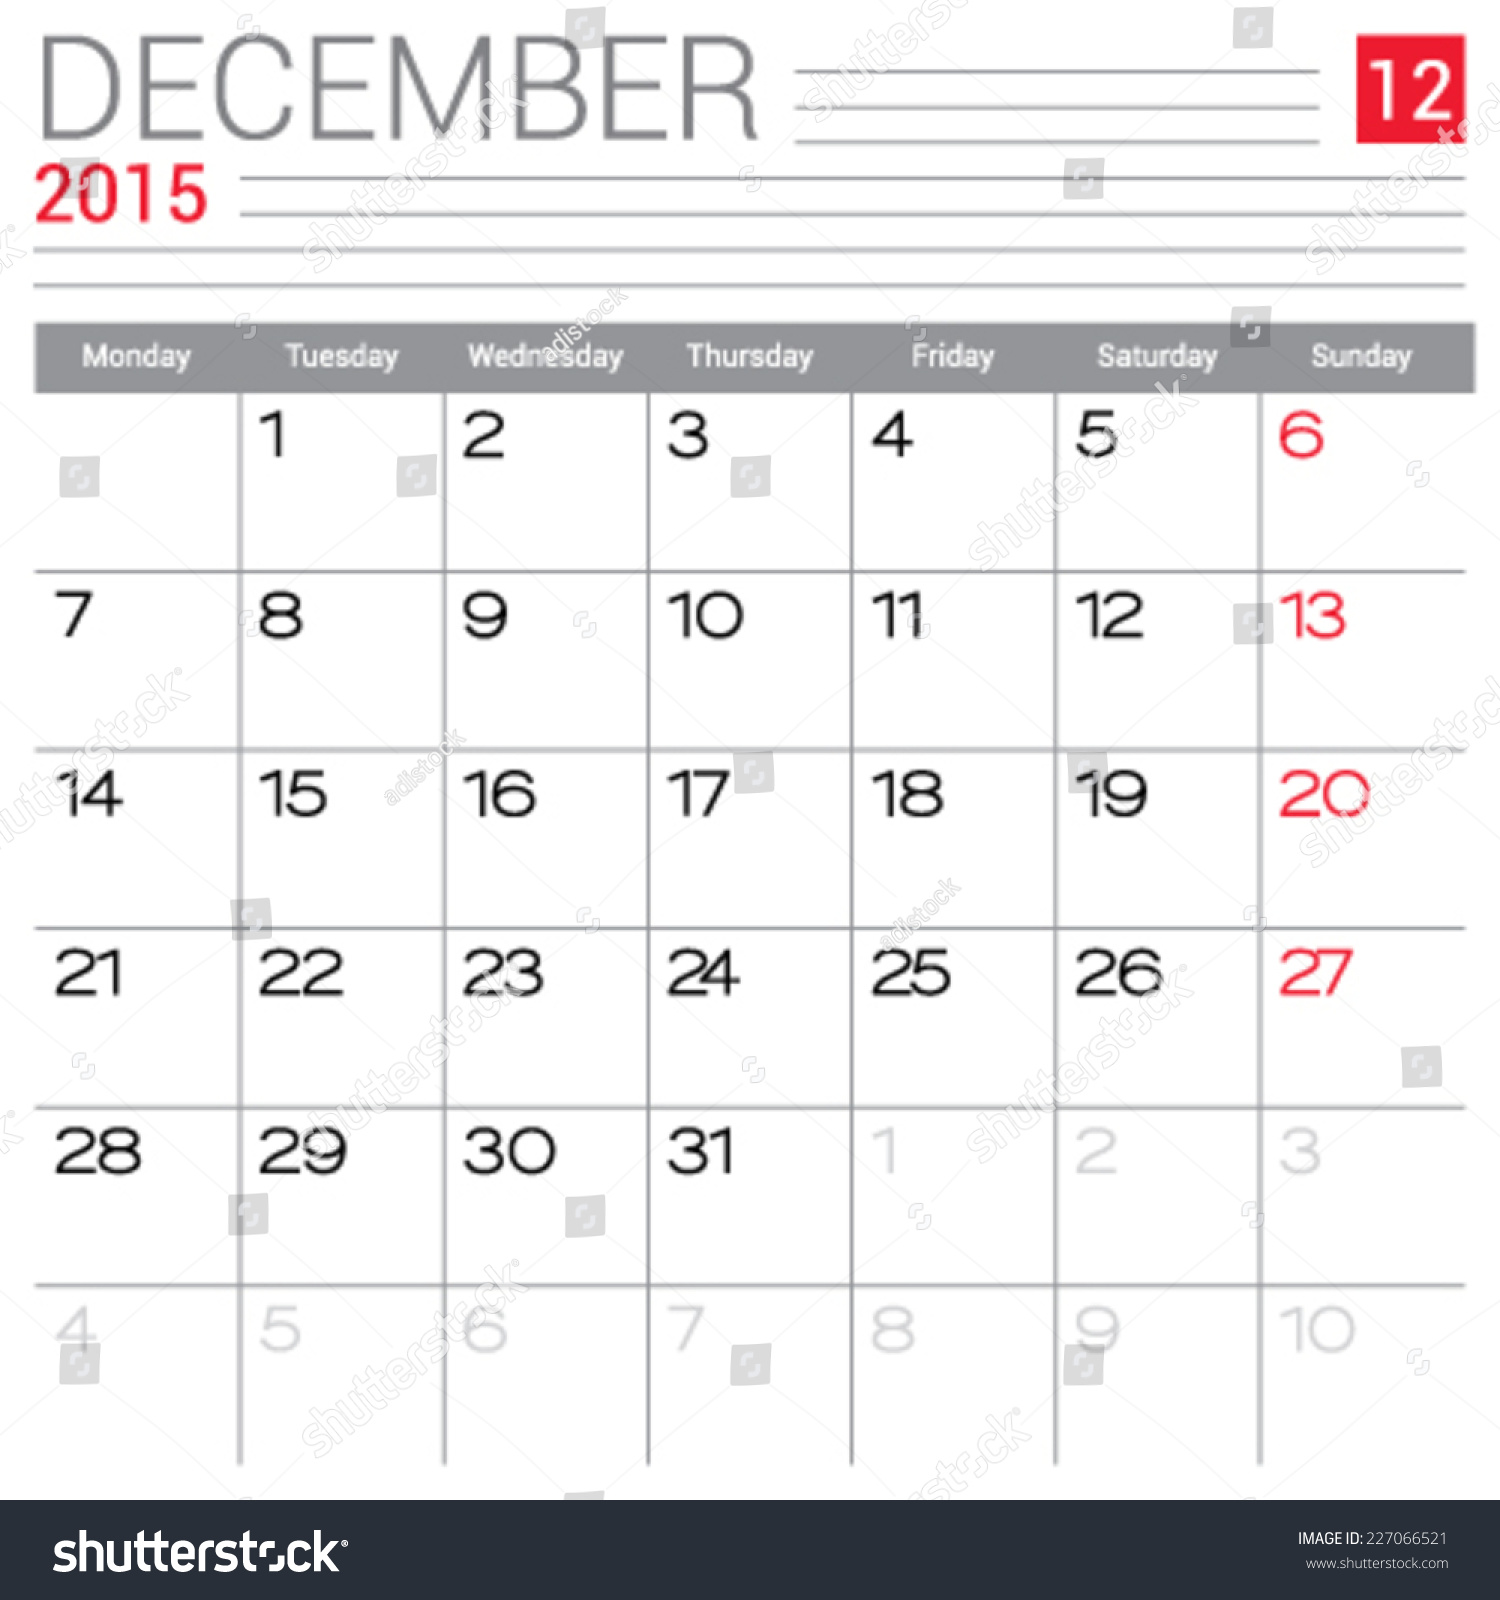 Weekly Calendar Vector : December calendar vector design template simple